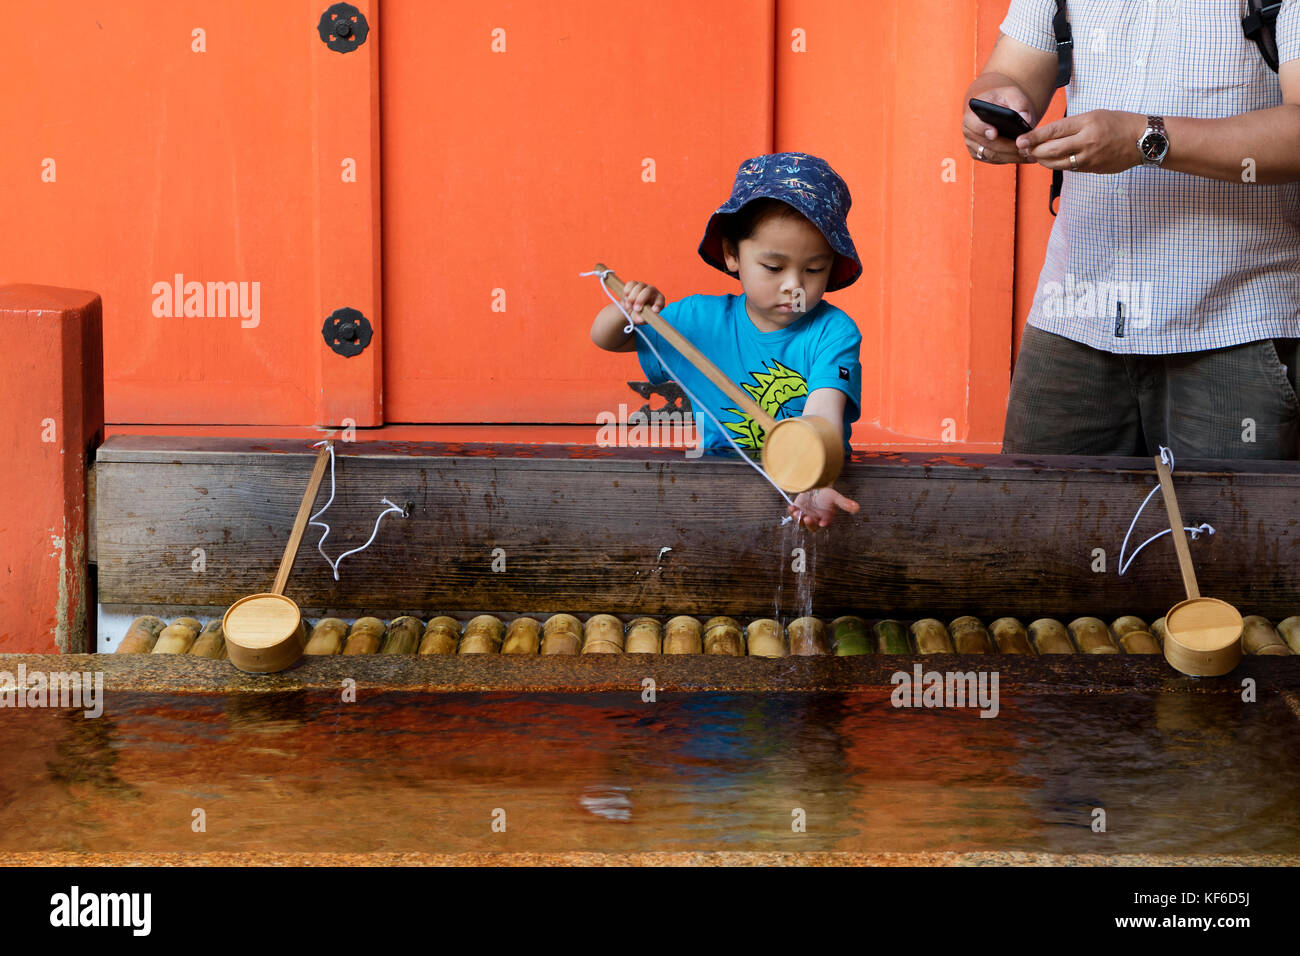 Miyajima - Japan, May 26, 2017: Child is cleaning hands at a purification fountain of the famous the Itsukushima - Stock Image